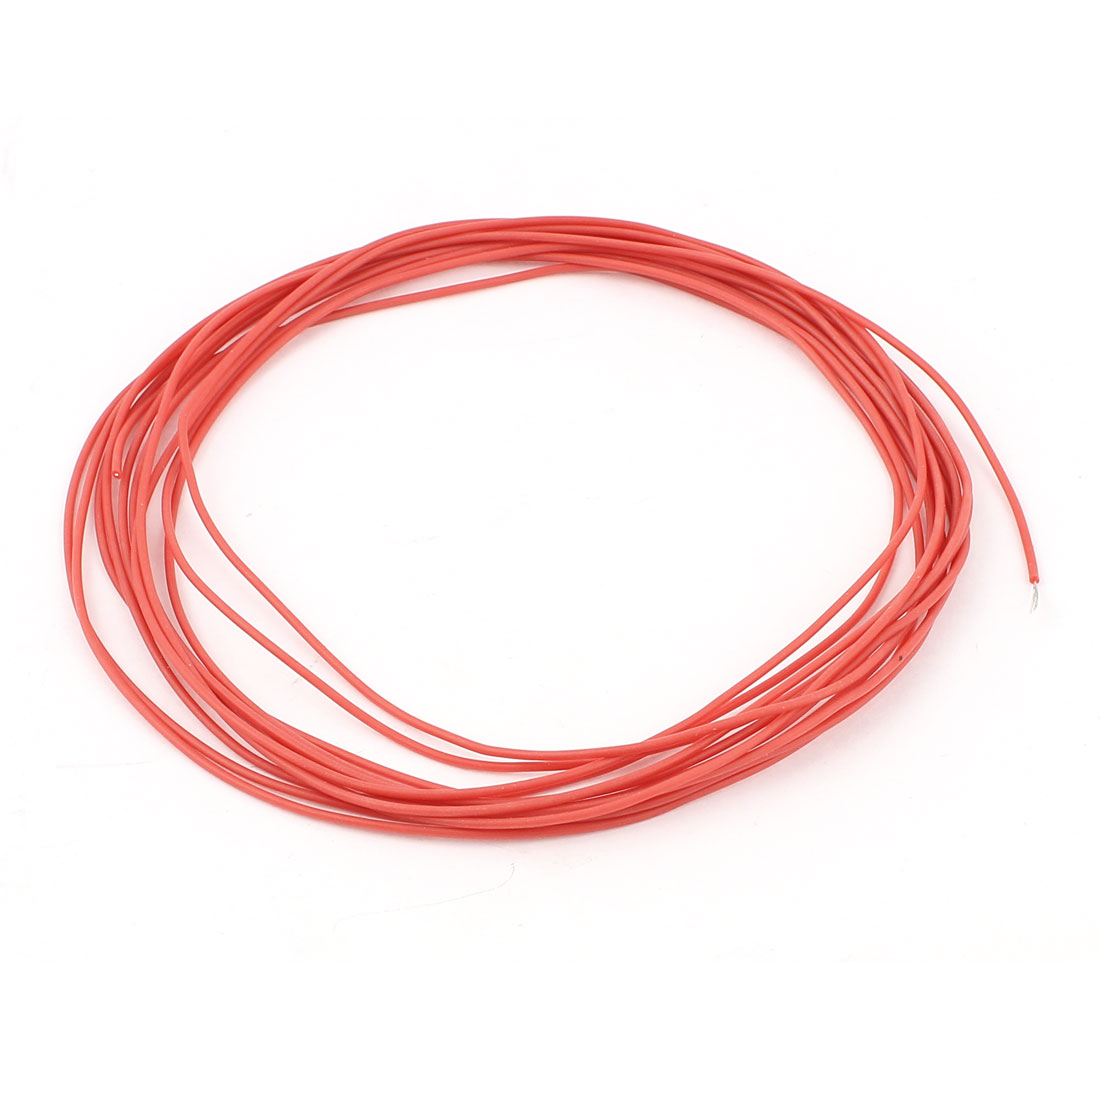 4M 13ft 28AWG Gauge Flexible Stranded Copper Cable Silicone Wire for RC